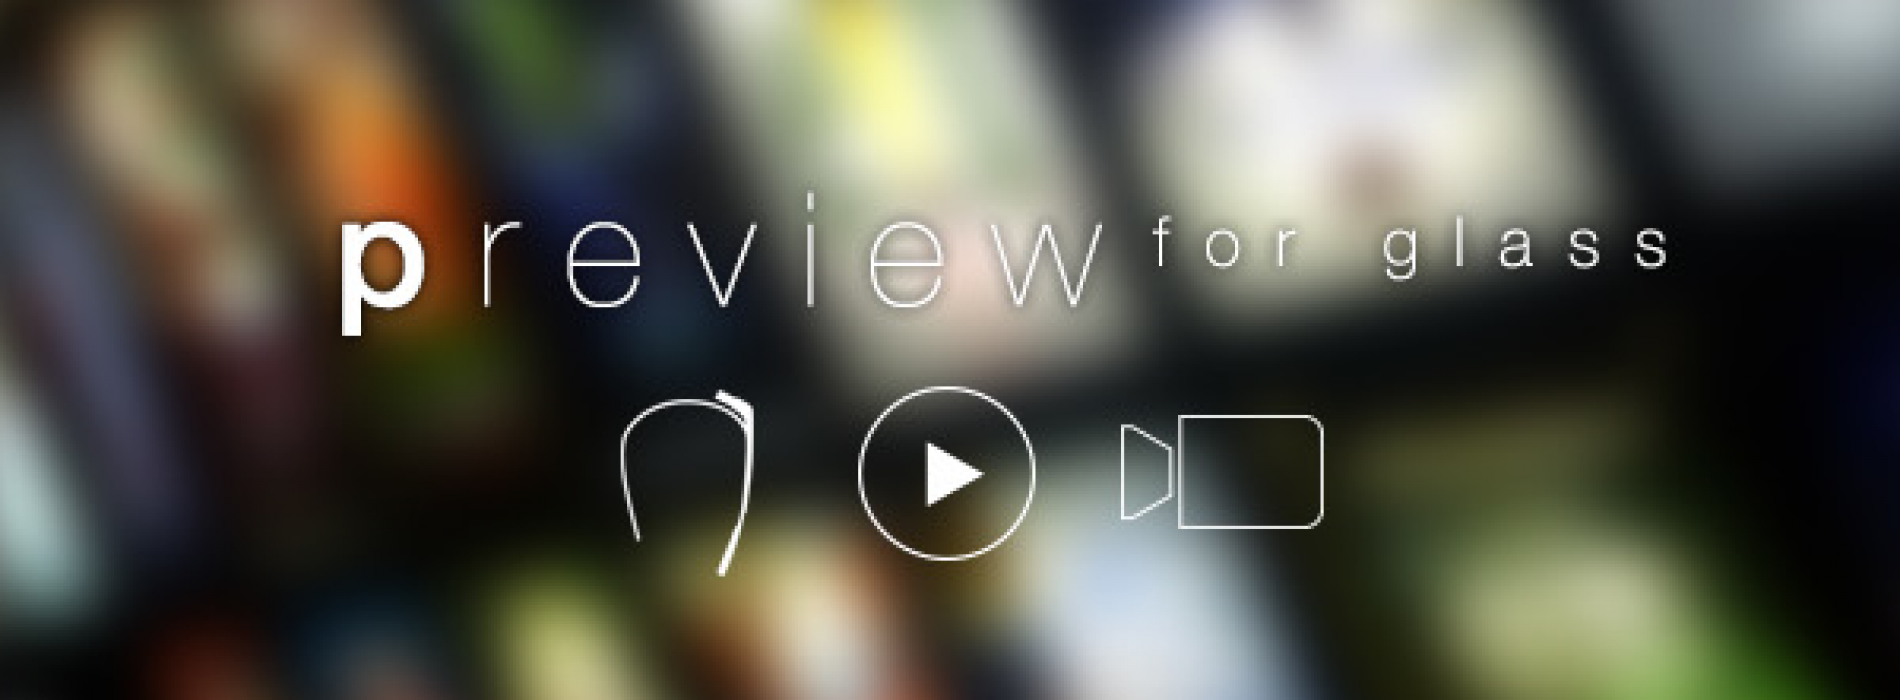 Preview for Glass lets you watch movie trailers by looking at posters